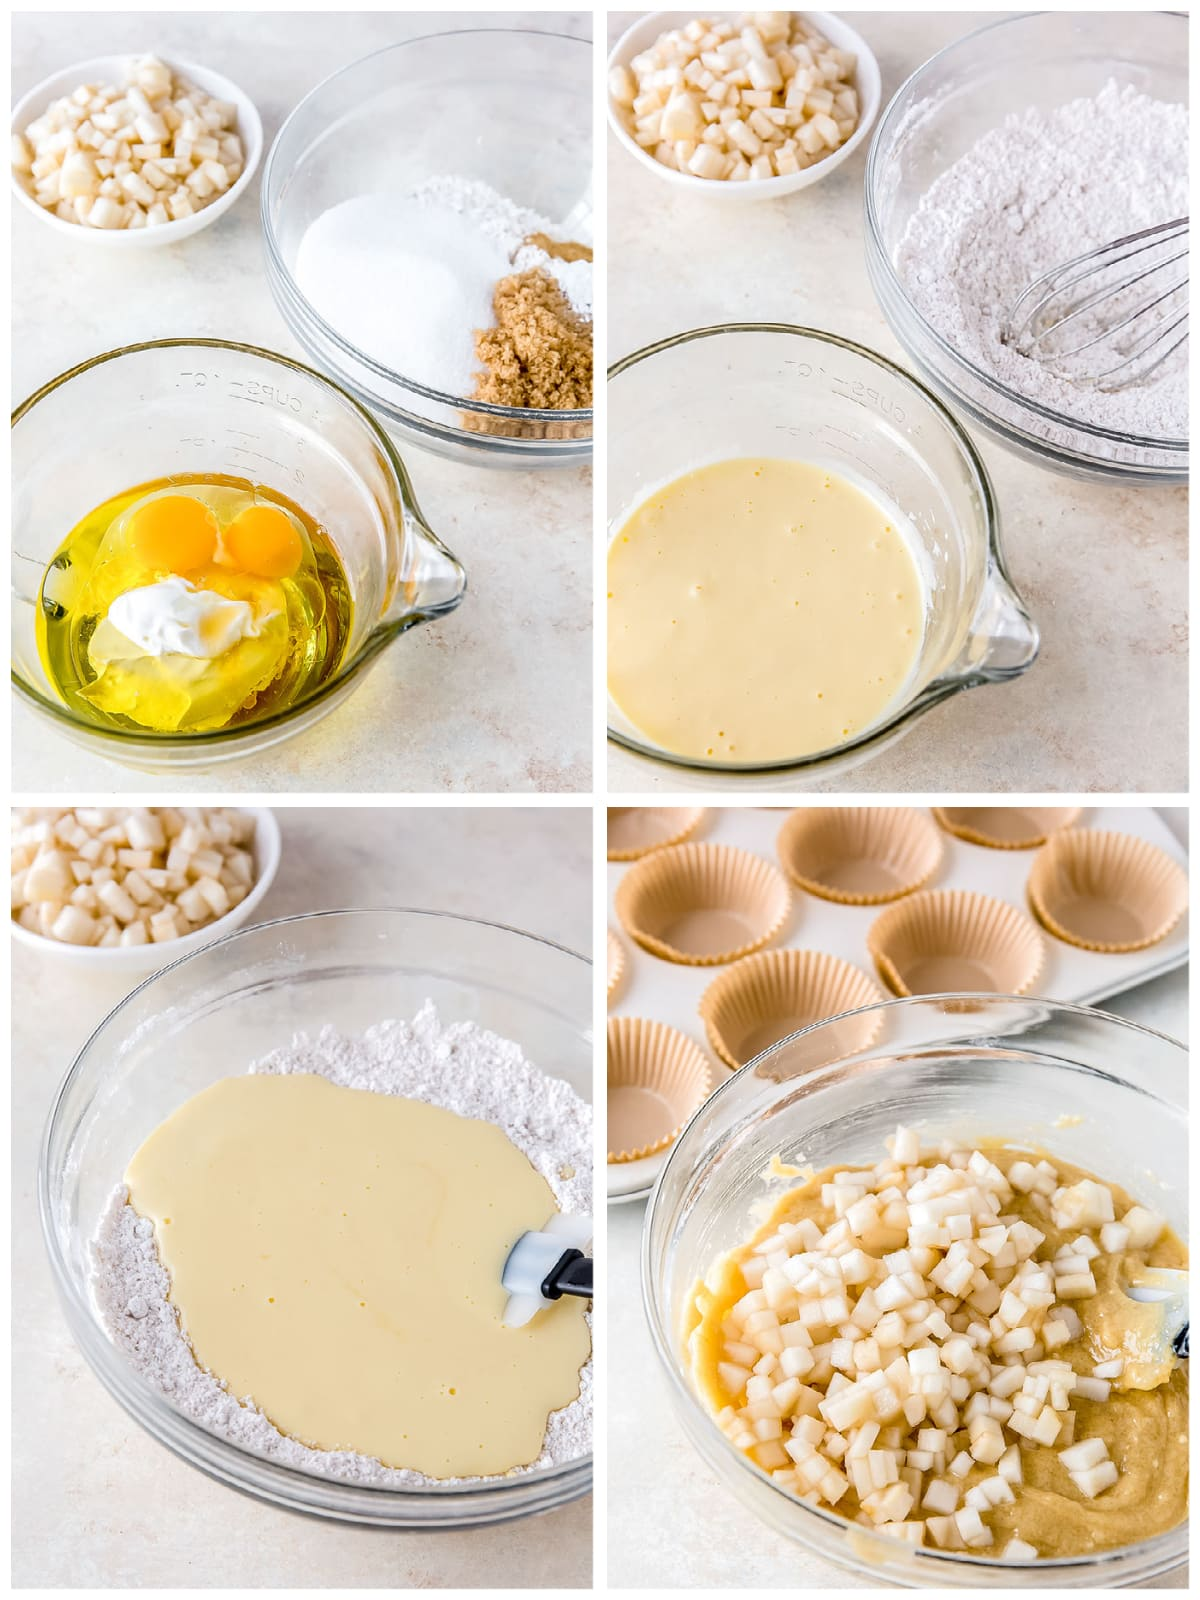 photo collage demonstrating how to make ginger pear muffins in mixing bowls